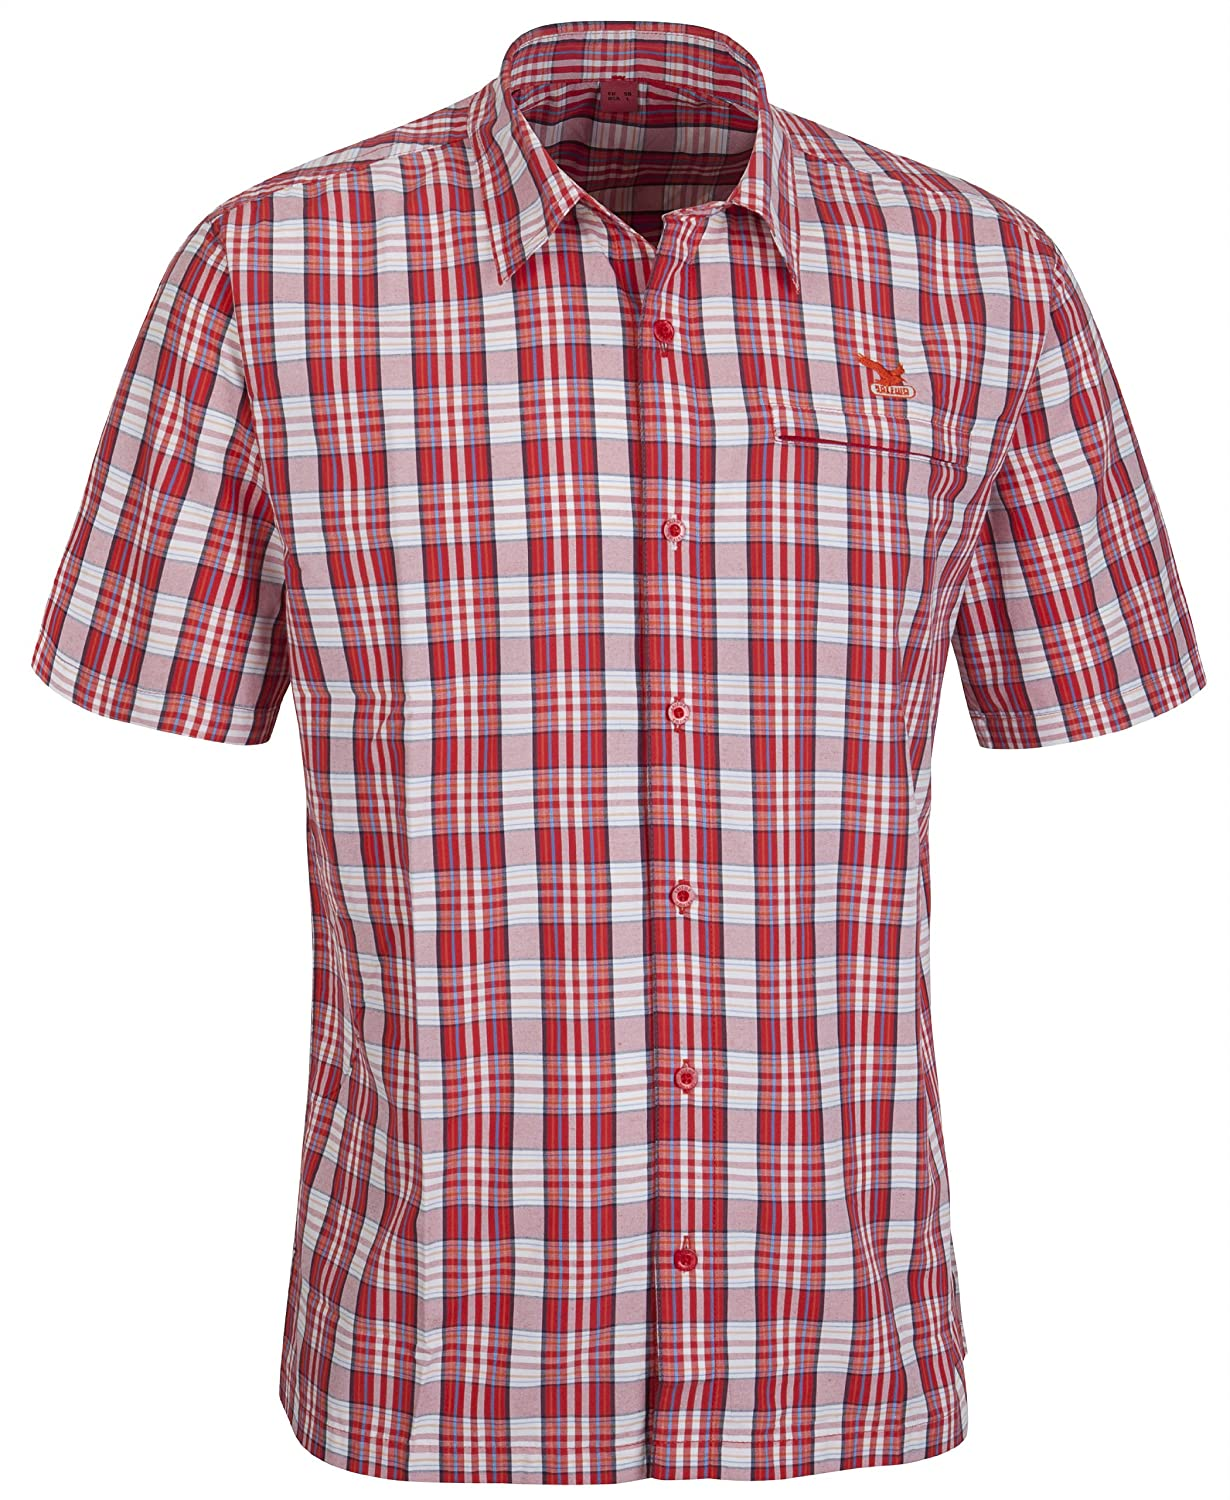 Salewa Herren Shirt Triumph Dry Short Sleeve 289